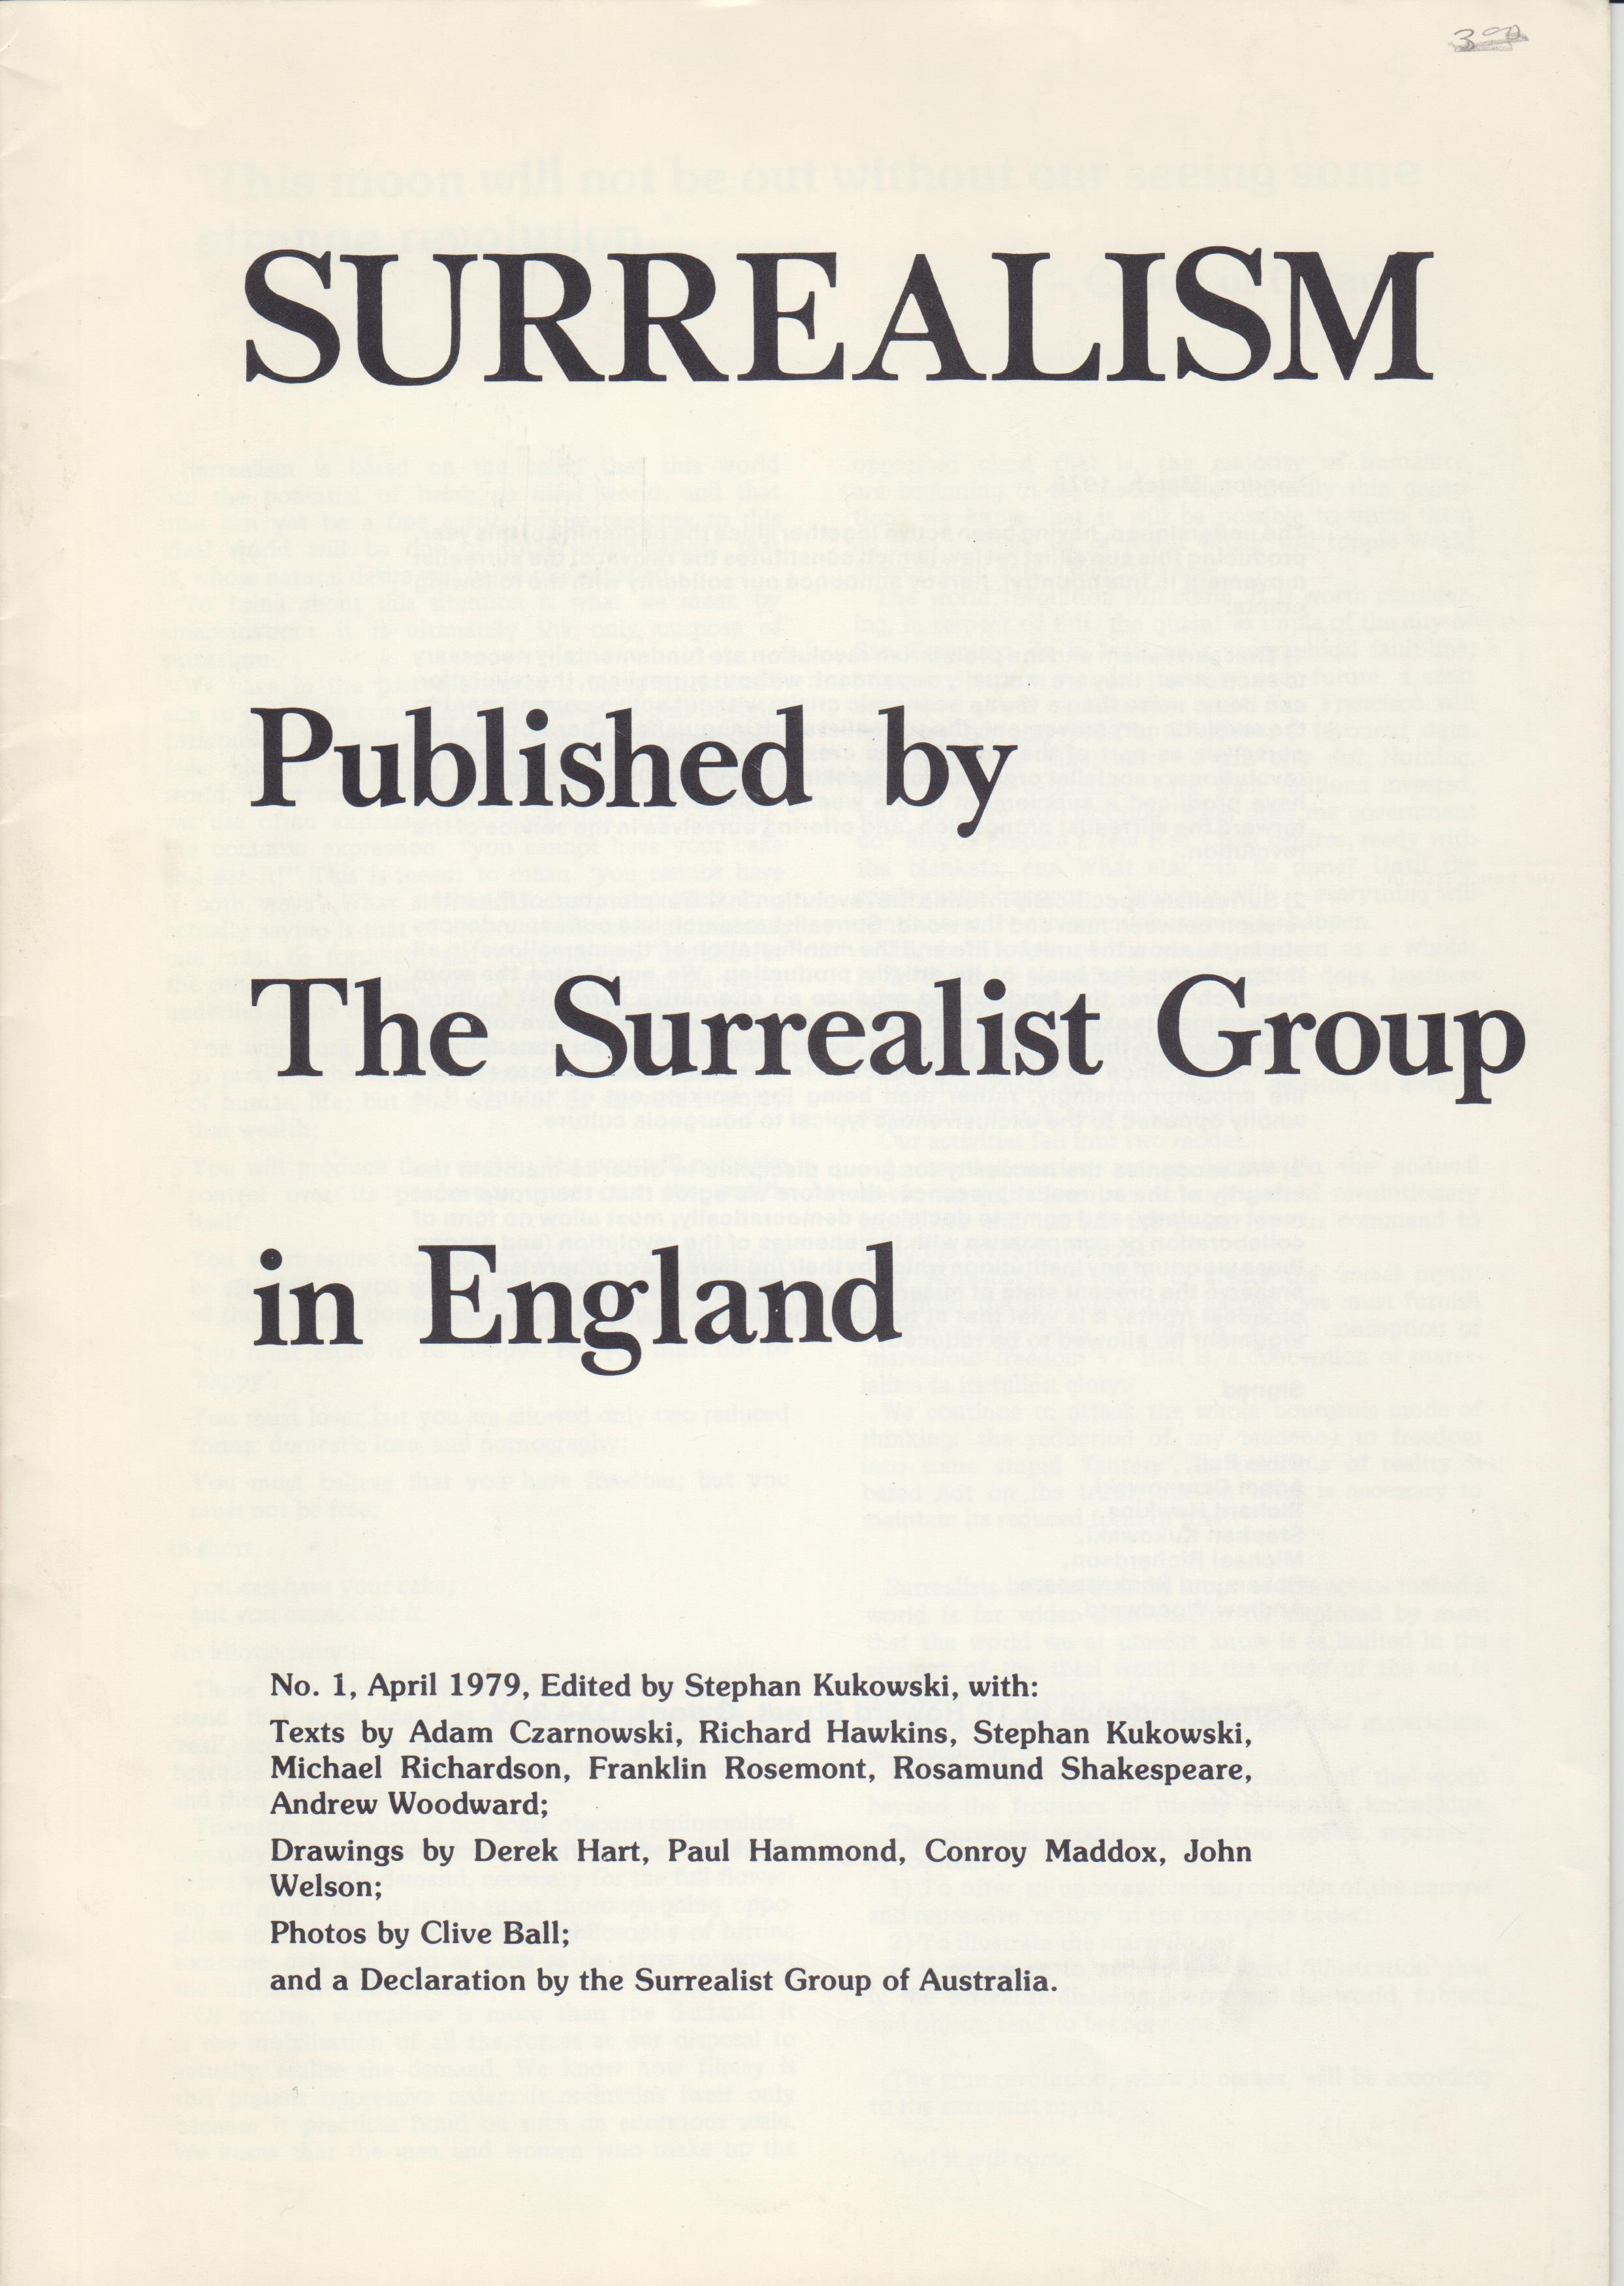 Image for Surrealism: Published by The Surrealist Group in England No 1 (April 1979)